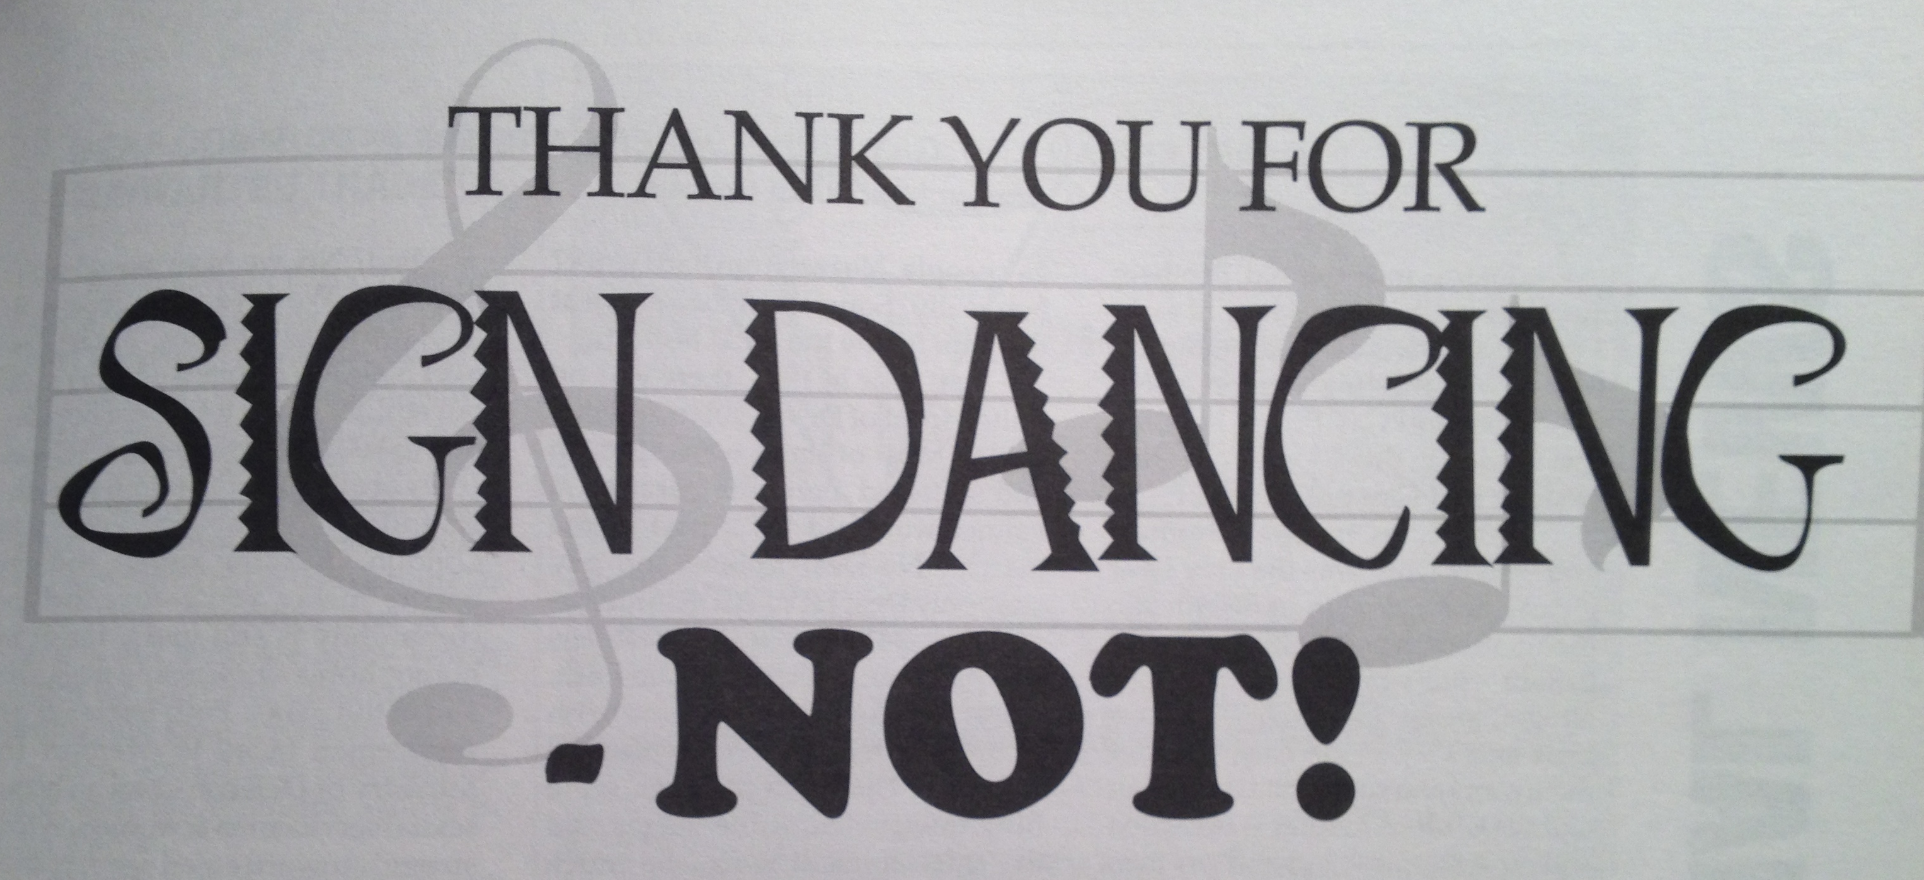 Thank You for Sign Dancing - NOT!